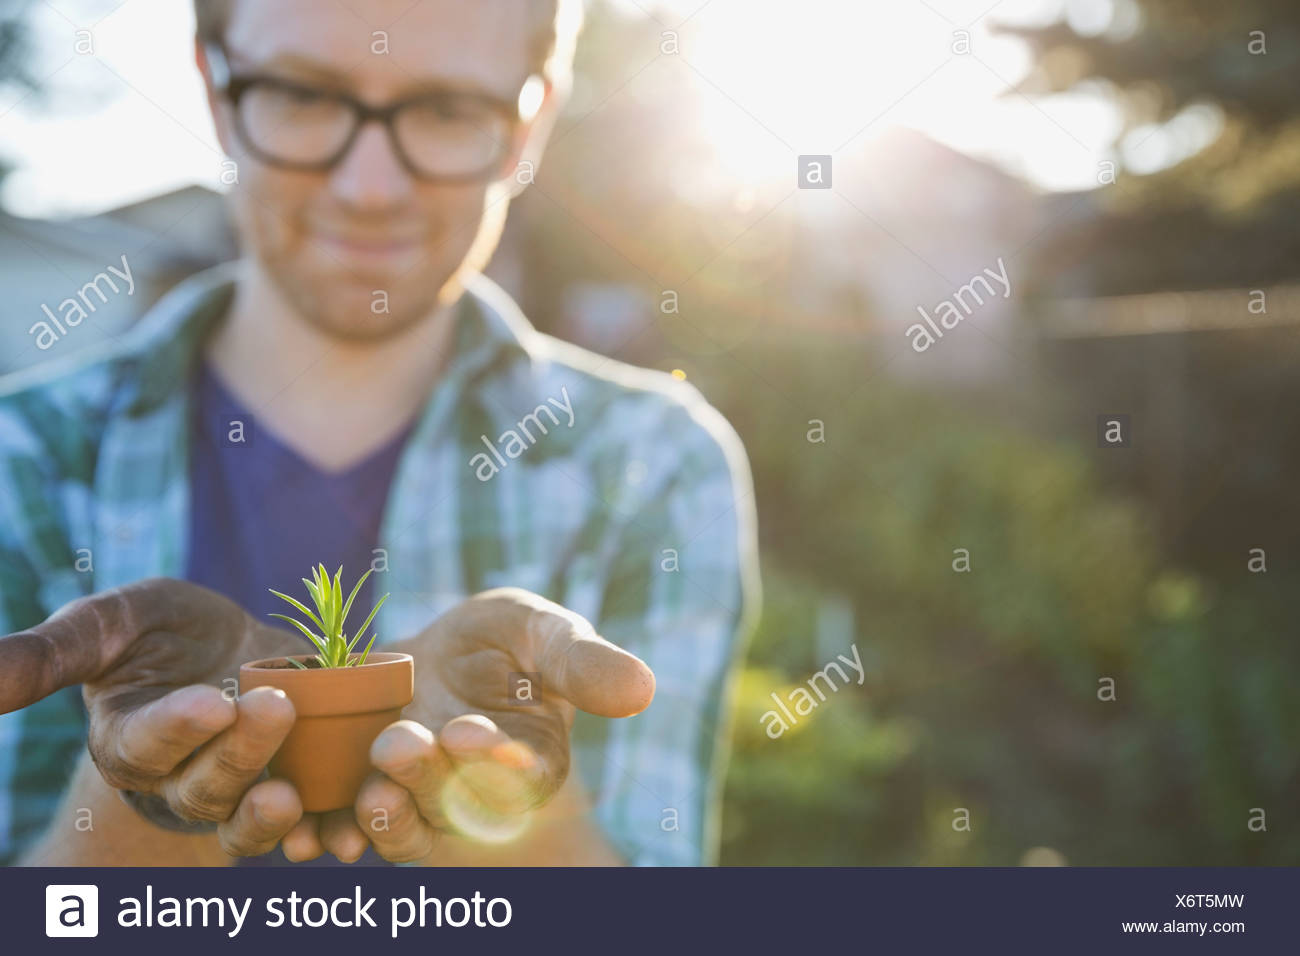 Man holding tiny potted plant in community garden - Stock Image